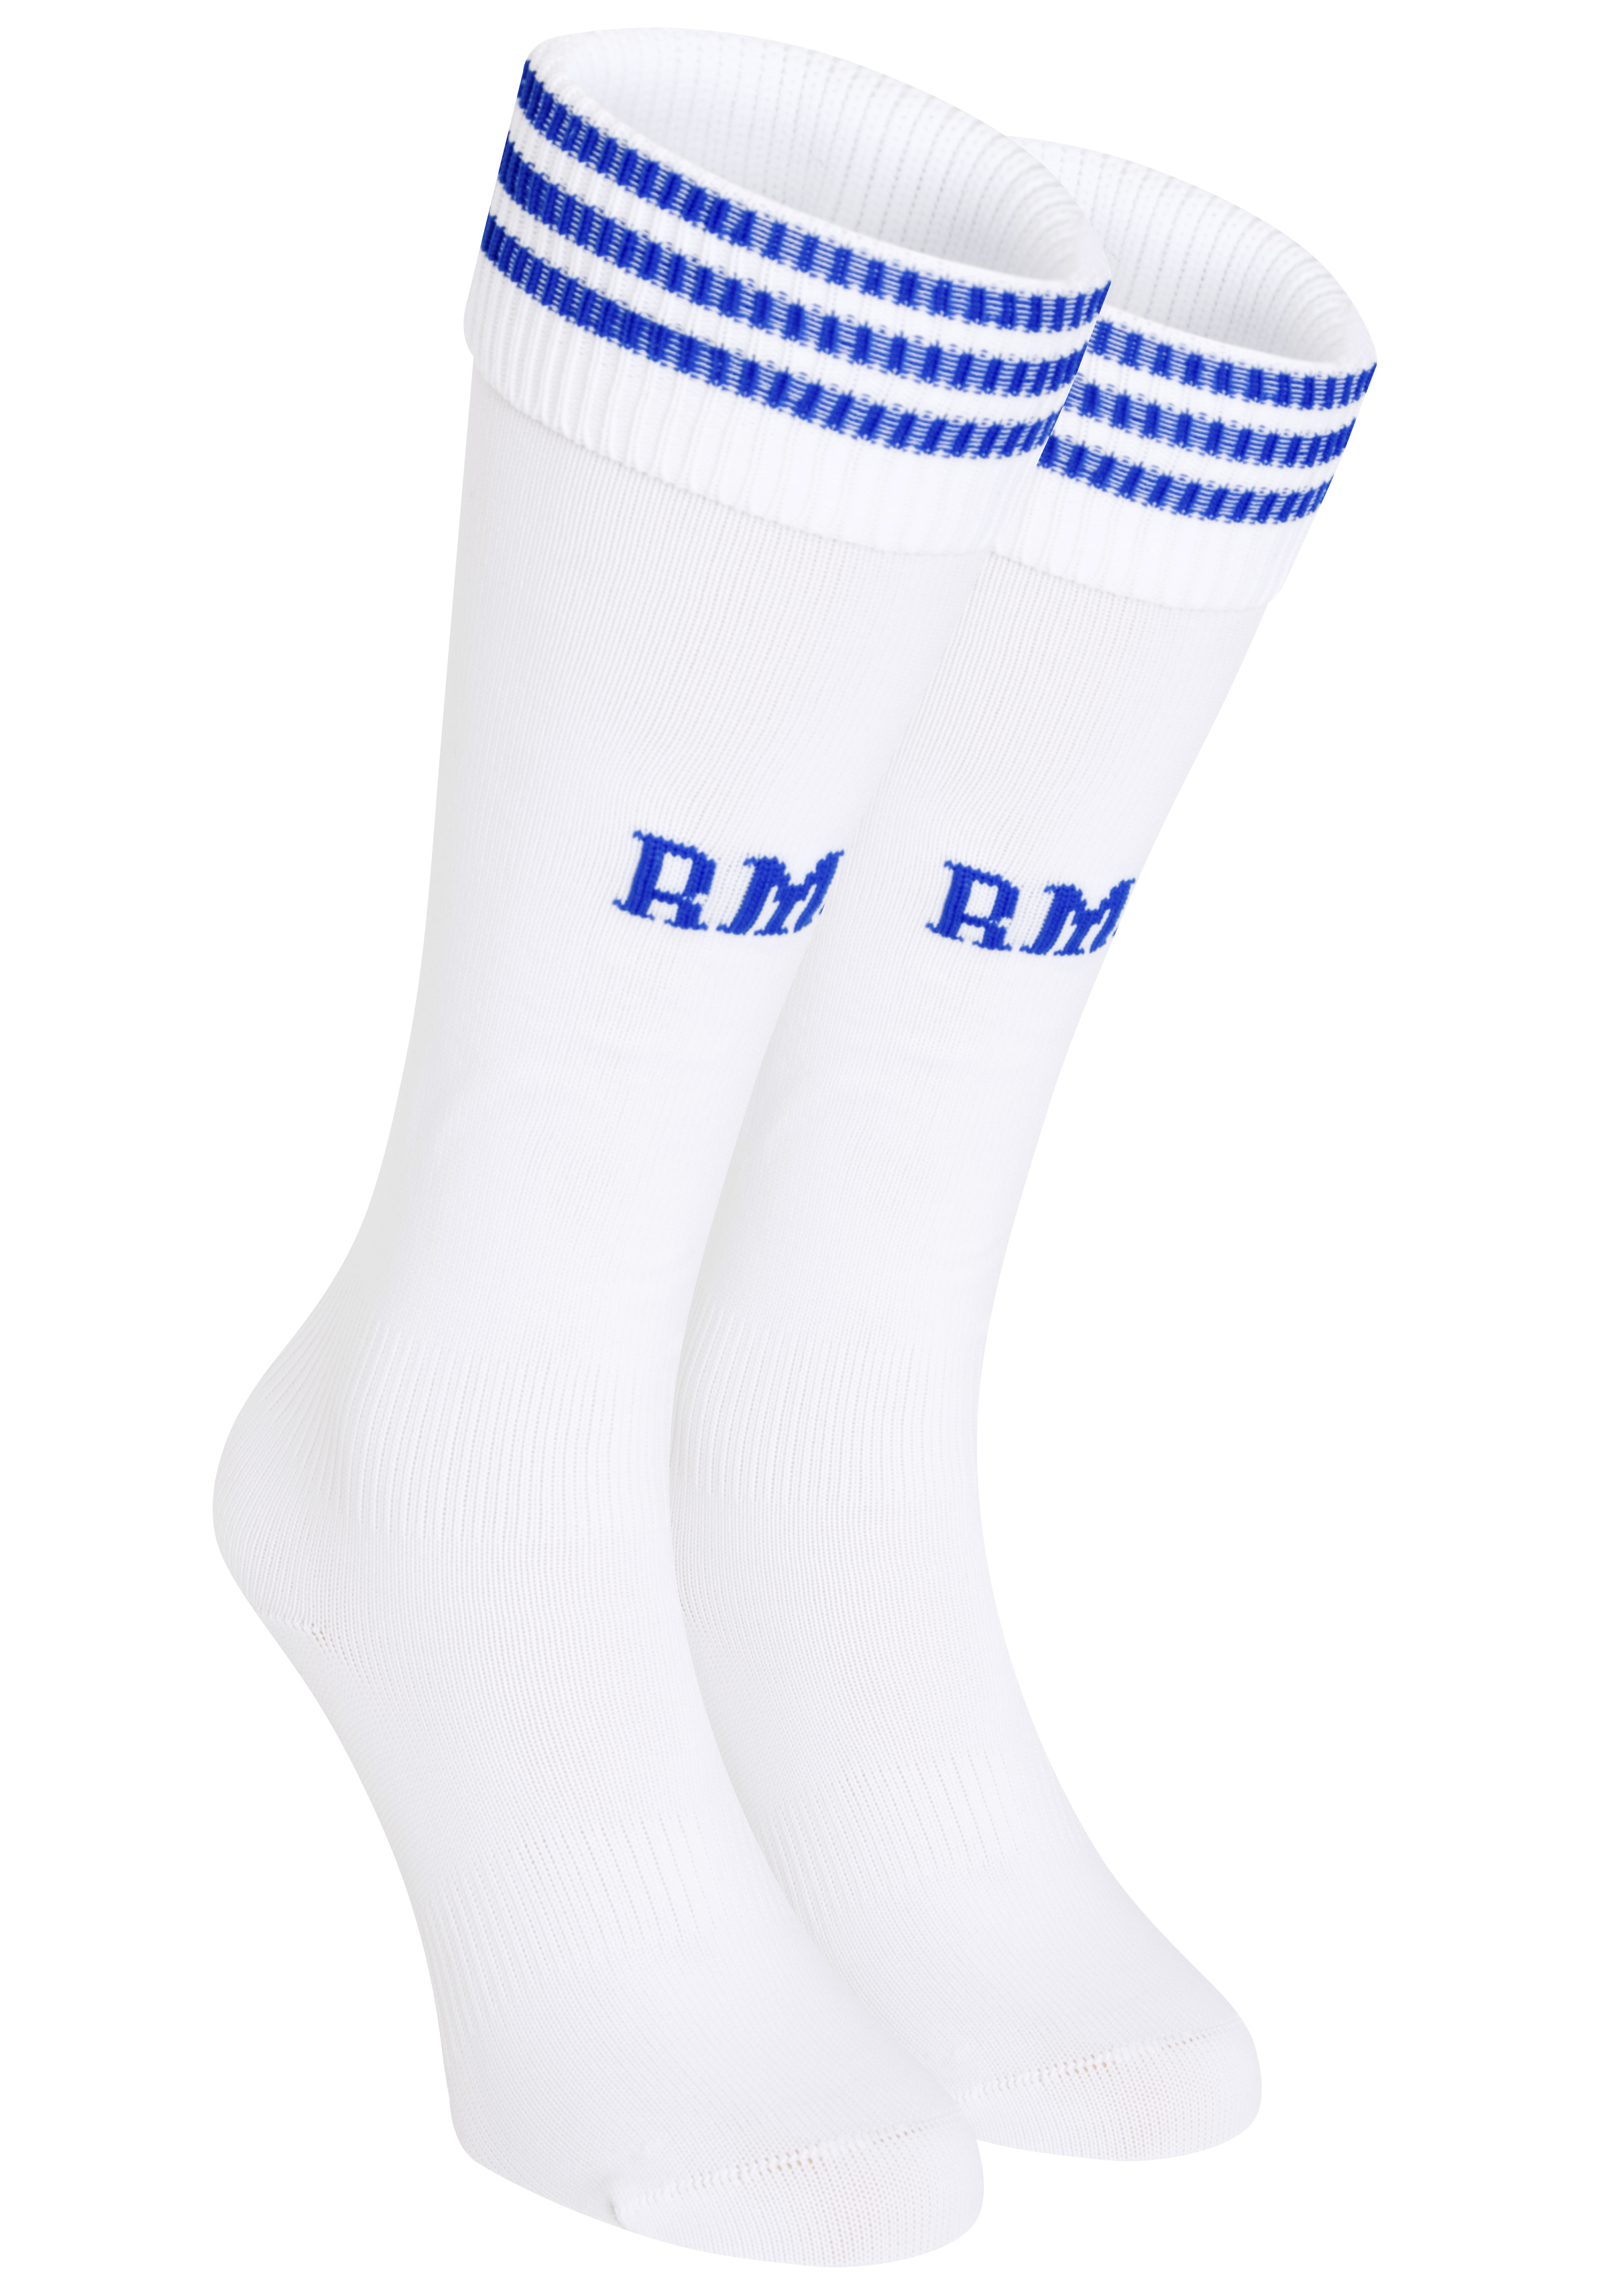 Real Madrid Home Socks 2010/11